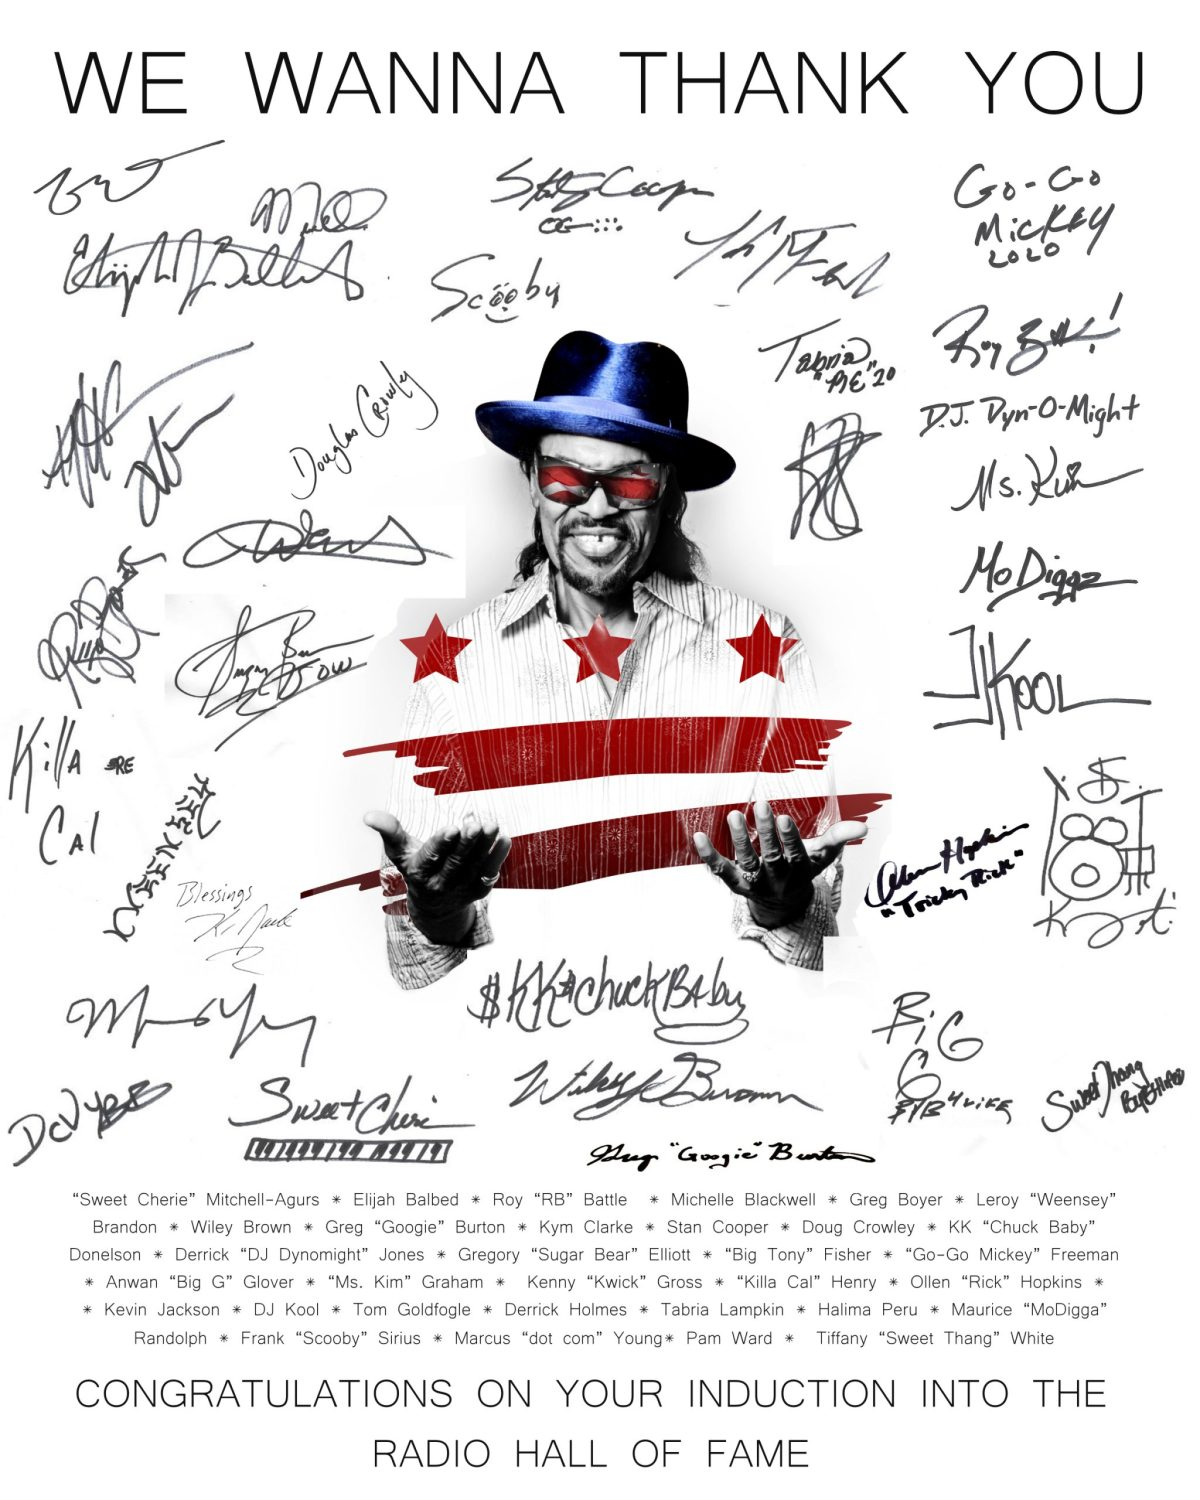 The signed poster thanking Donnie Simpson.